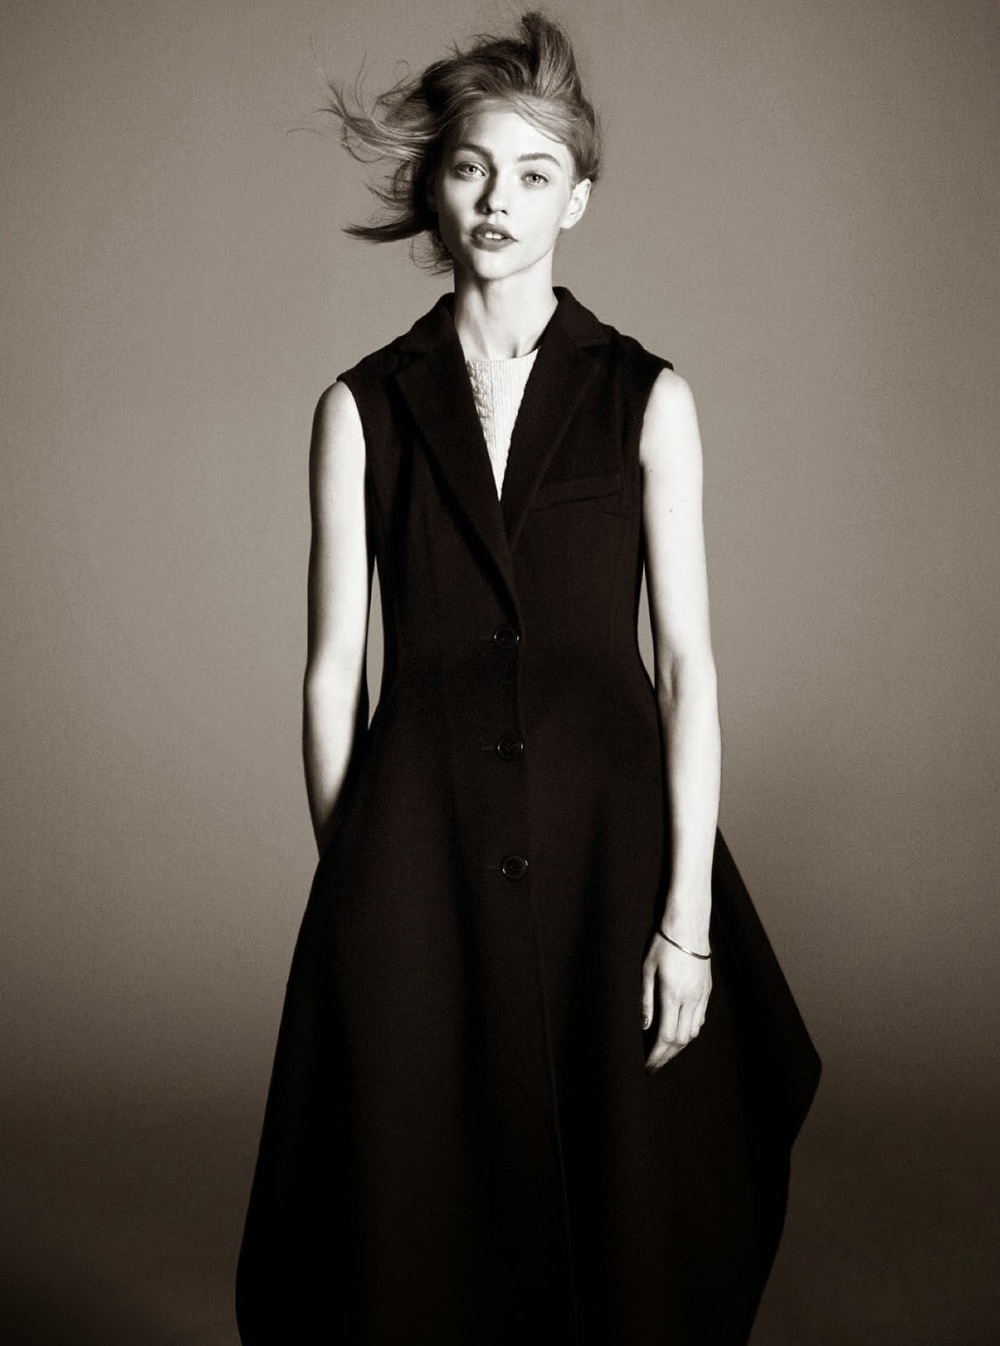 sasha-pivovarova-by-david-sims-for-vogue-paris-august-2014-11.jpg